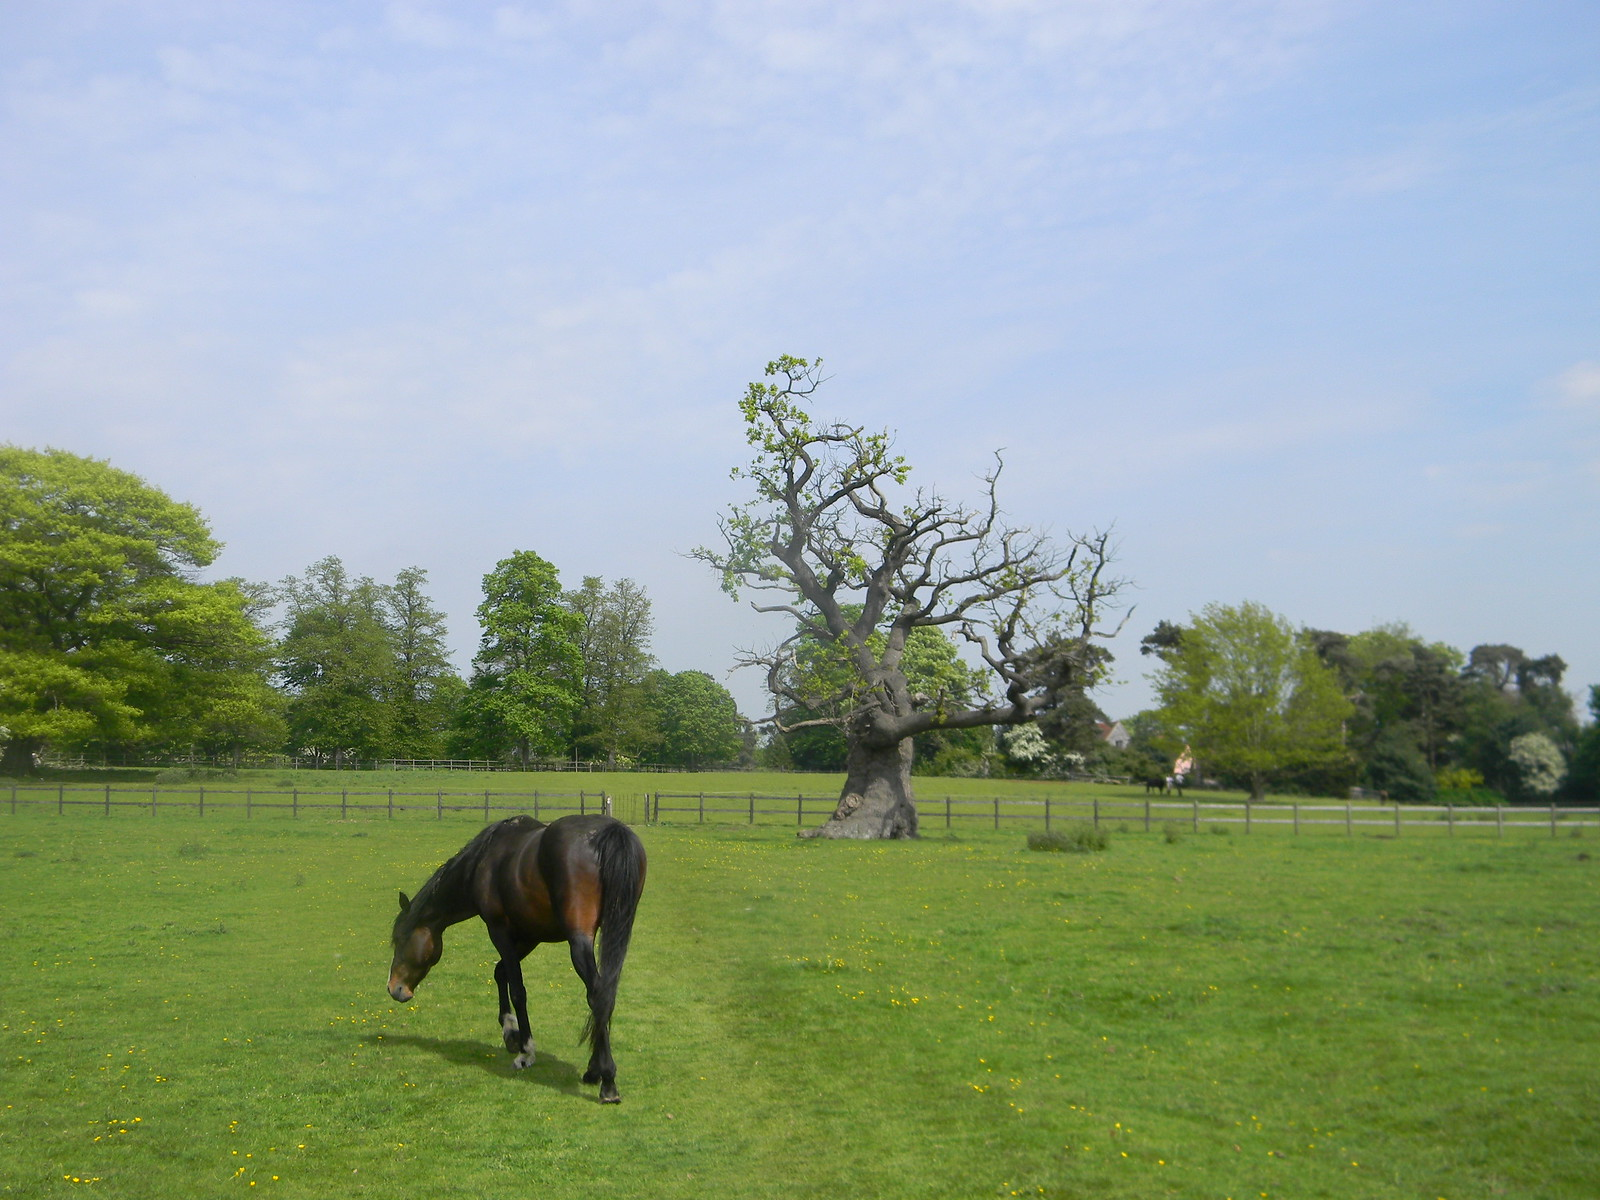 Horse and tree in field Manningtree Circular